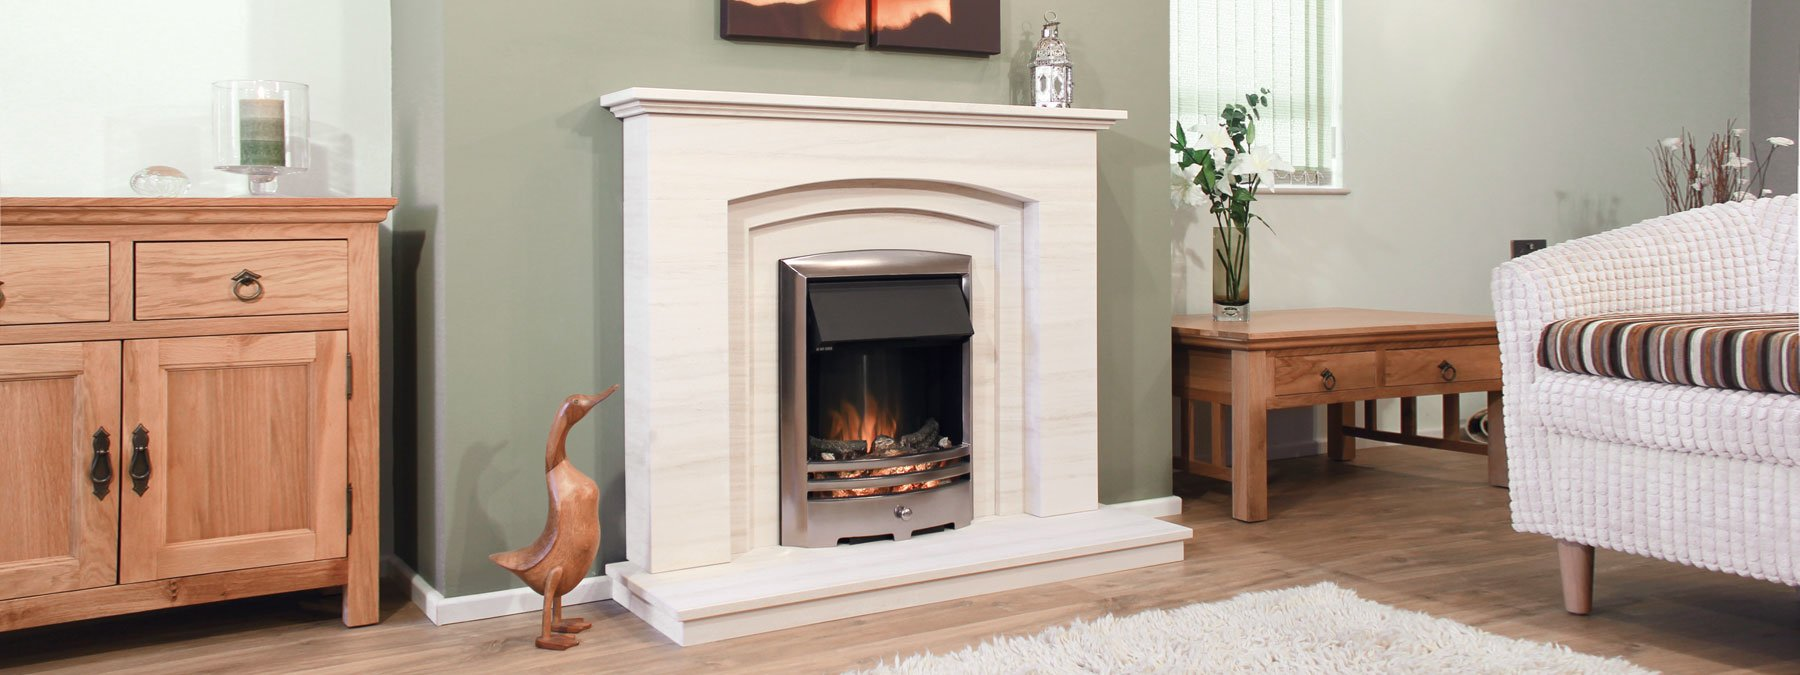 Fireplaces For Sale Online